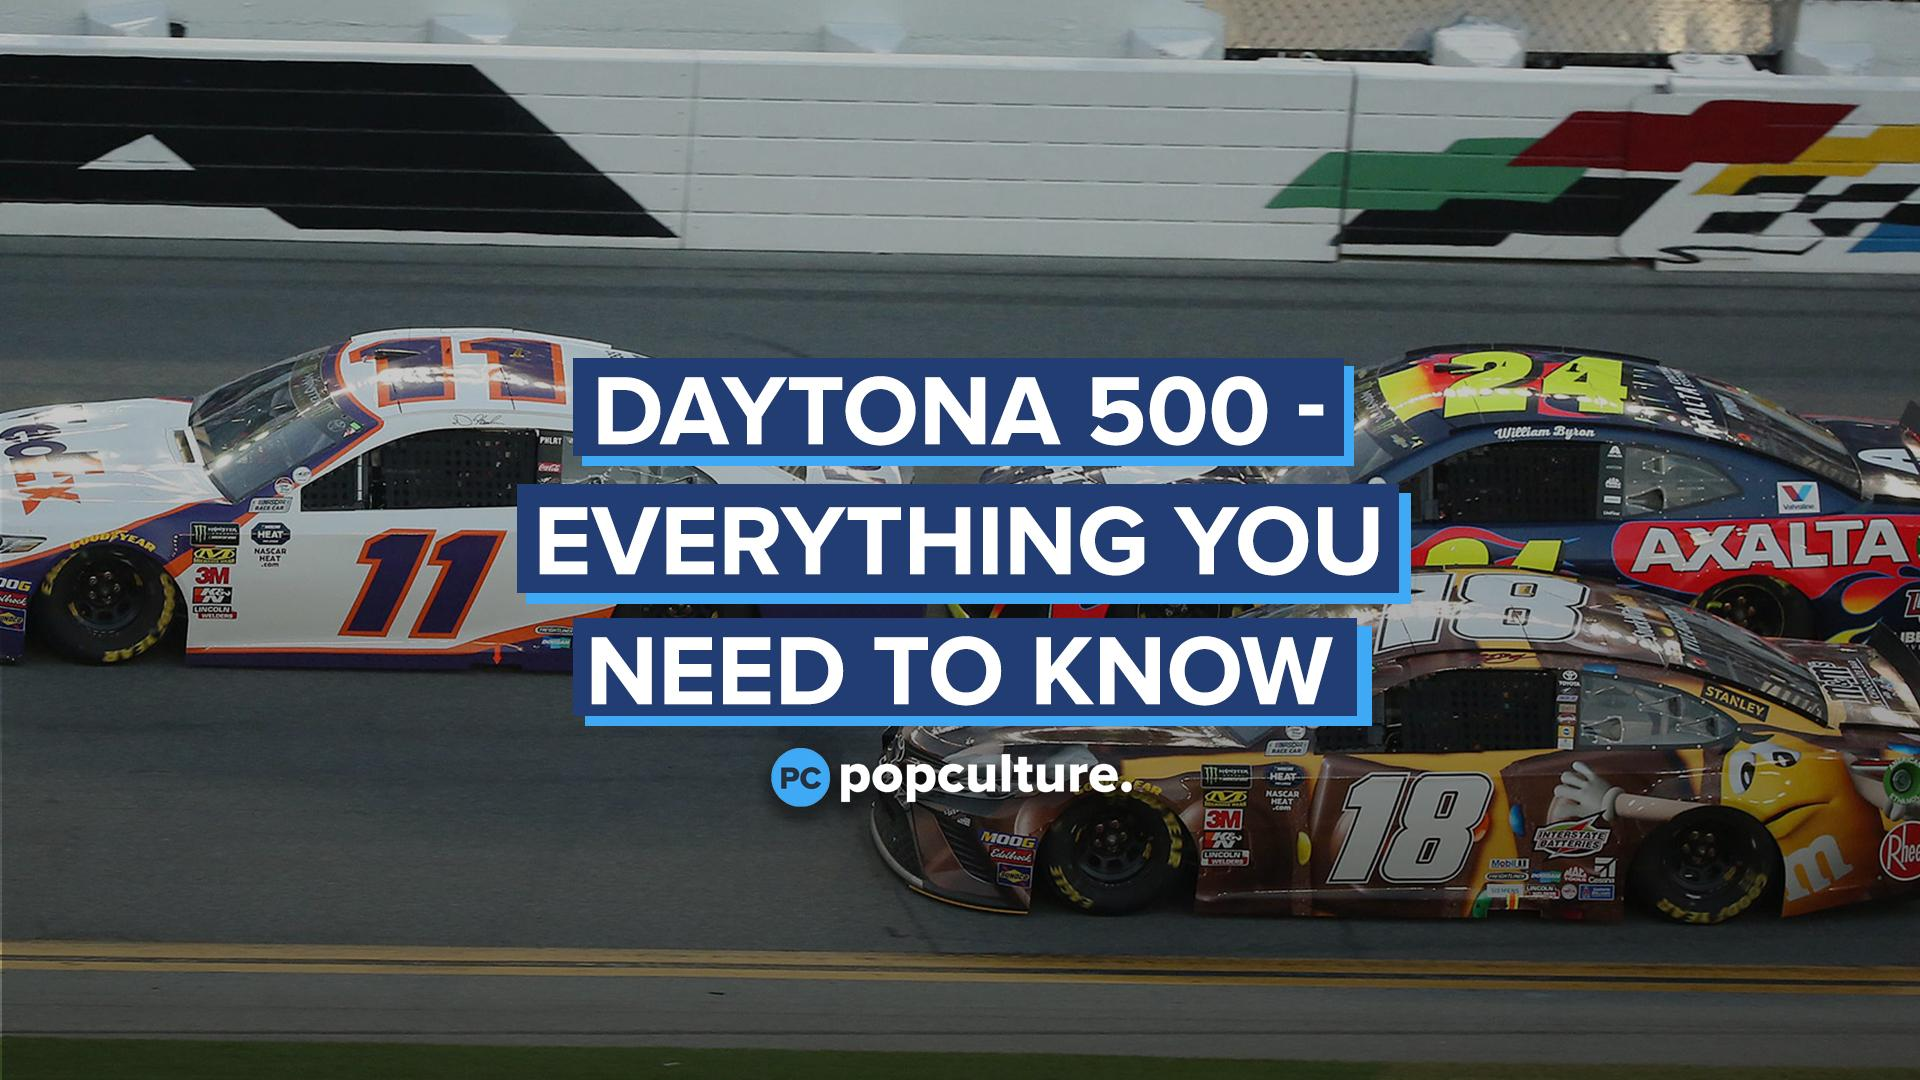 Daytona 500 - Everything You Need to Know screen capture